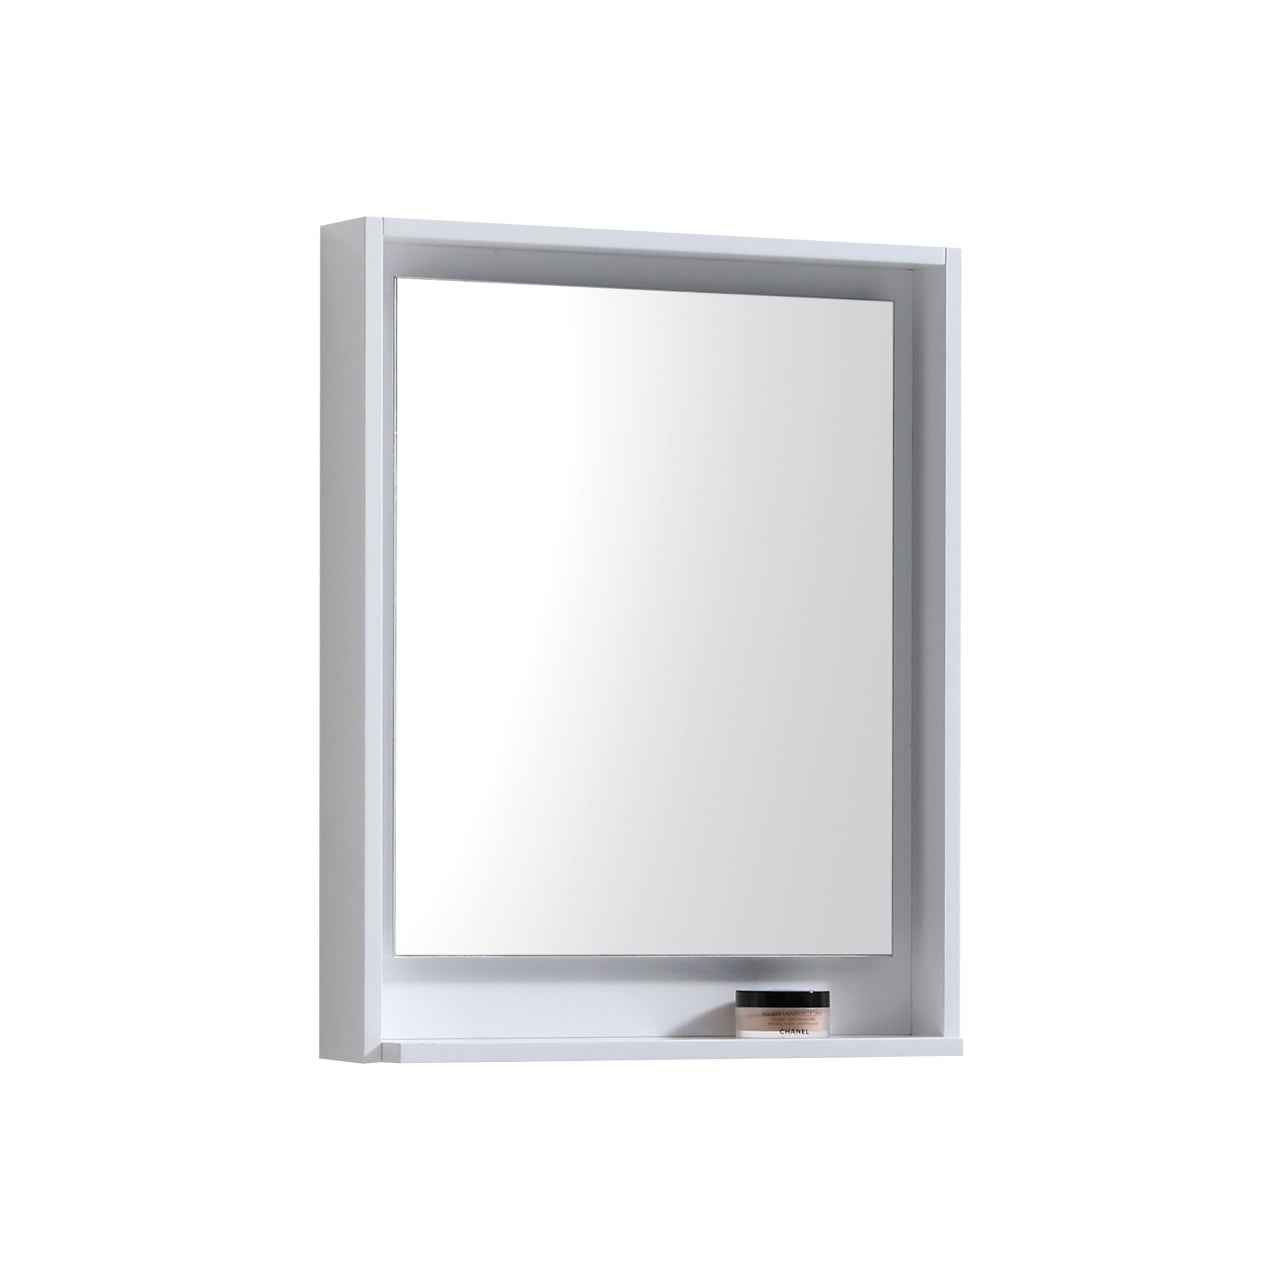 "BLISS- 24"" Gloss White, Mirror With Wood Trim and Bottom Shelf - Vanity Sale"